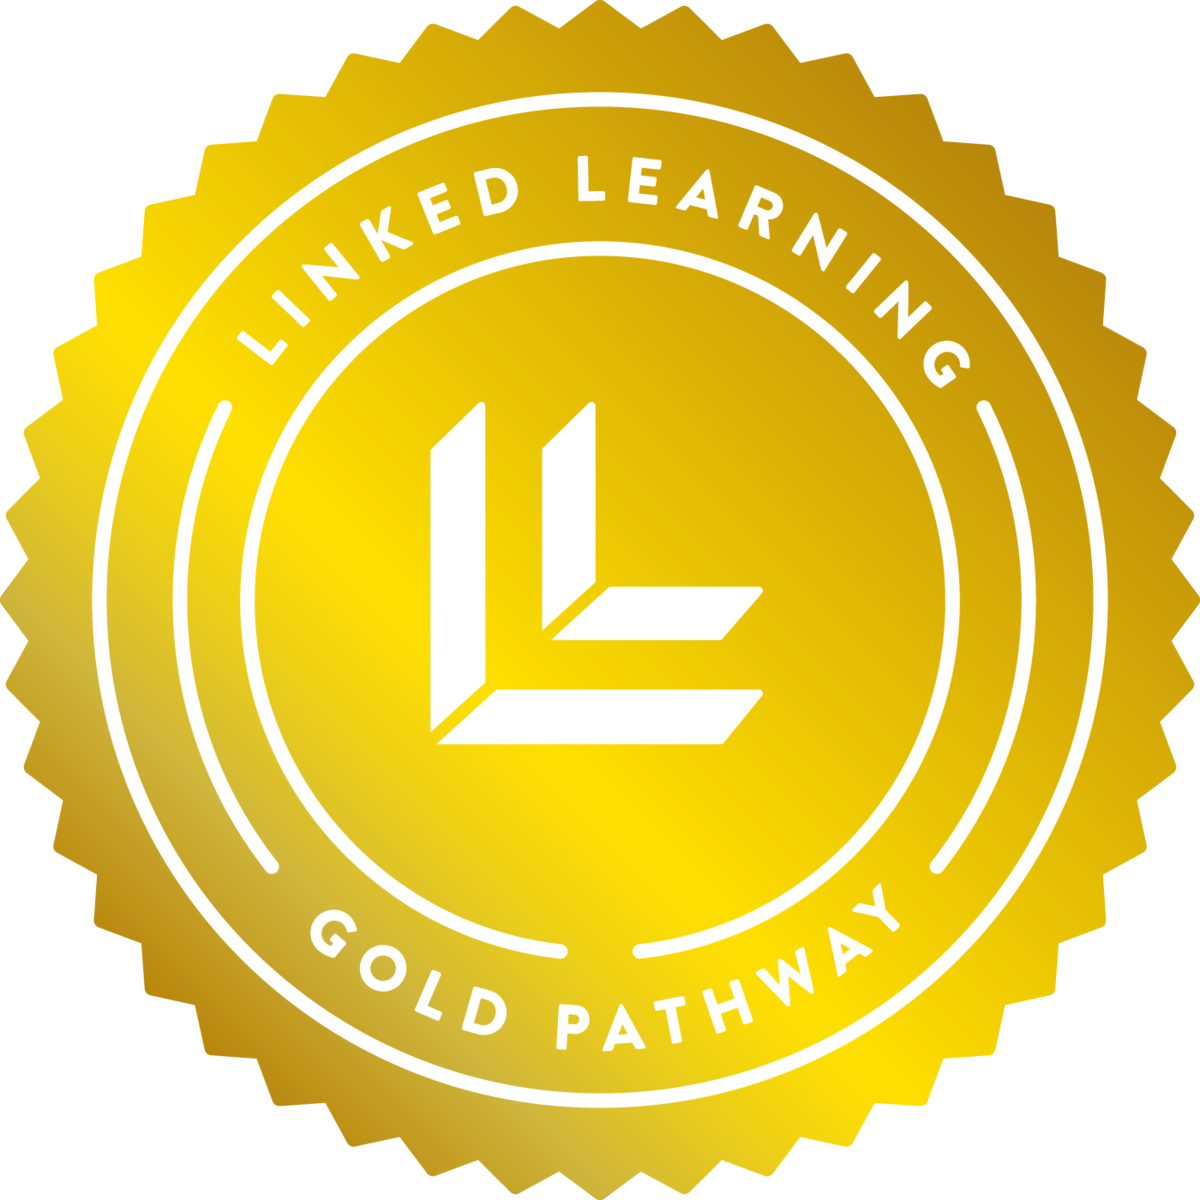 Linked Learning Gold Pathway